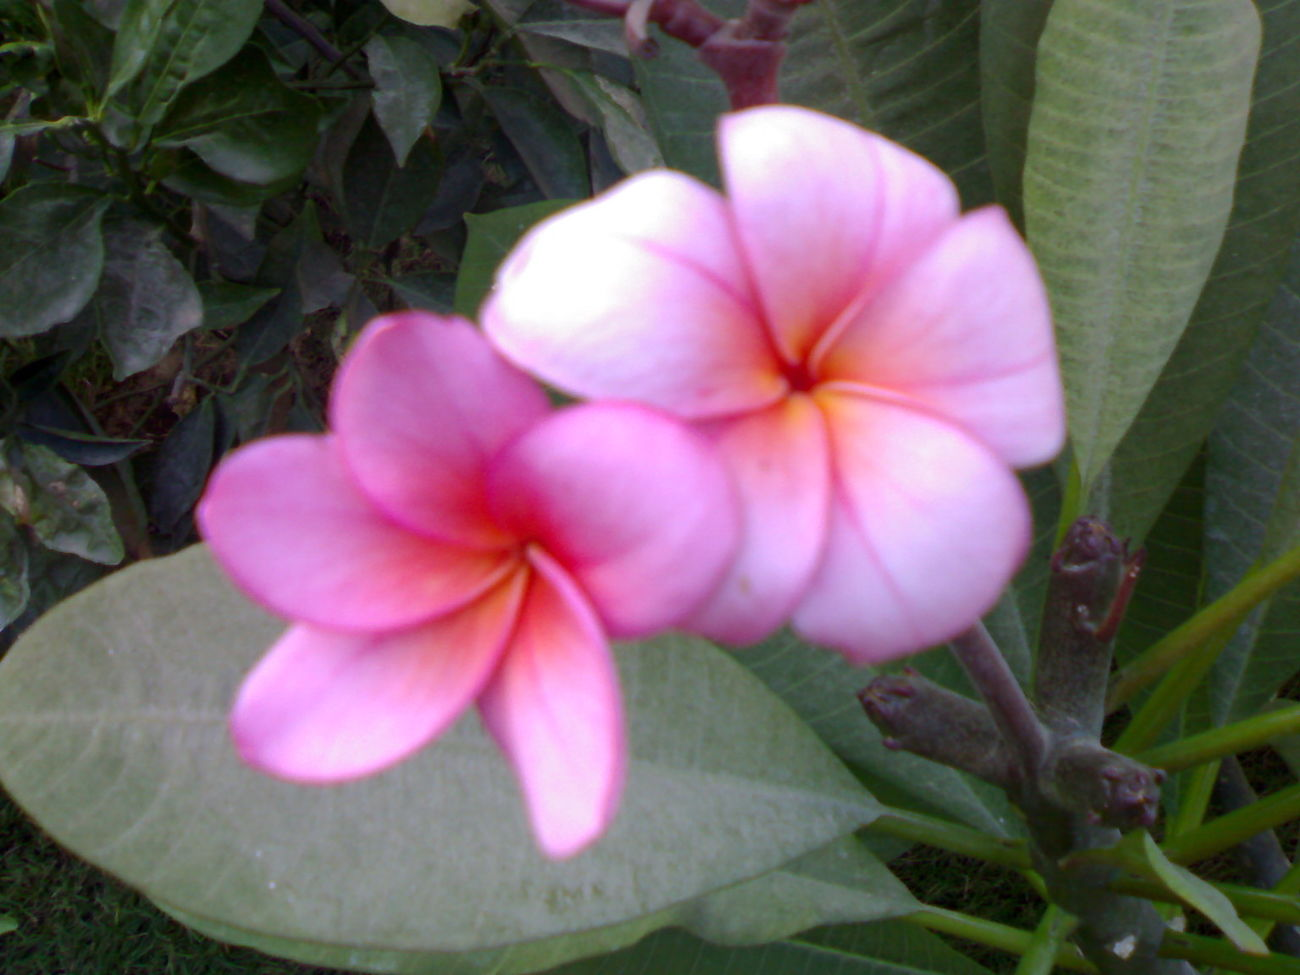 Beauty In Nature Blooming Close-up Day Flower Flower Head Fragility Freshness Growth Jasmine Flower Leaf Lovly Smile Nature No People Outdoors Periwinkle Petal Pink Plant